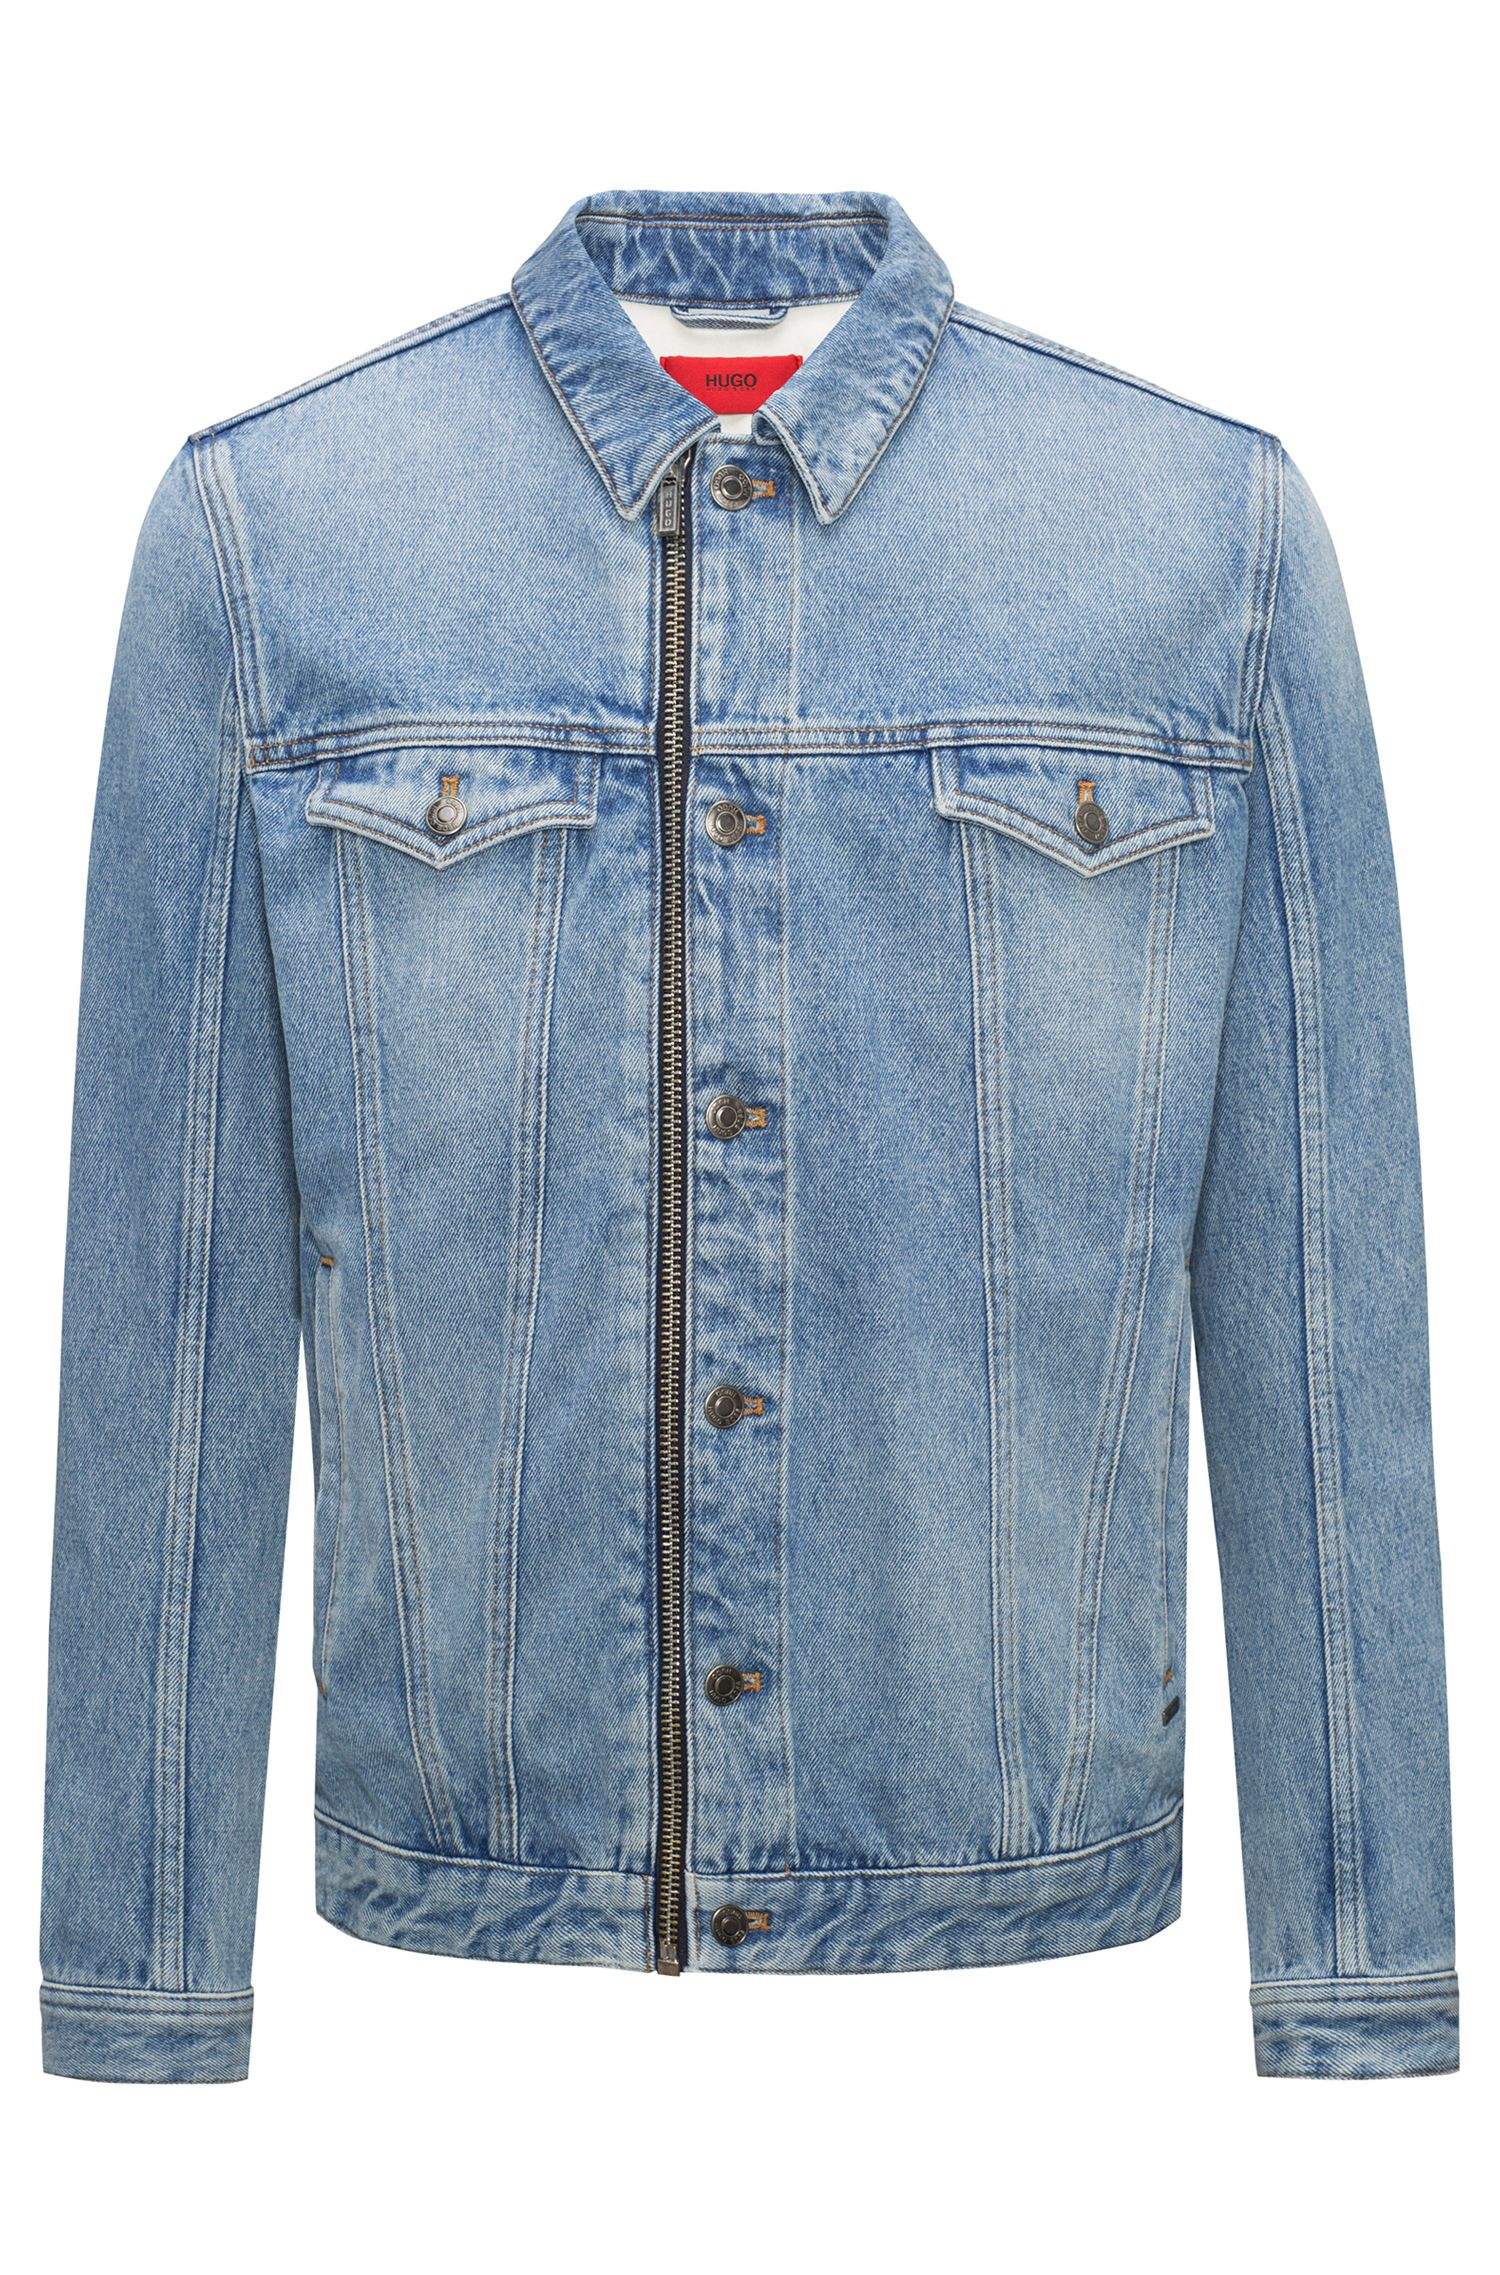 Light-wash denim jacket with zip front